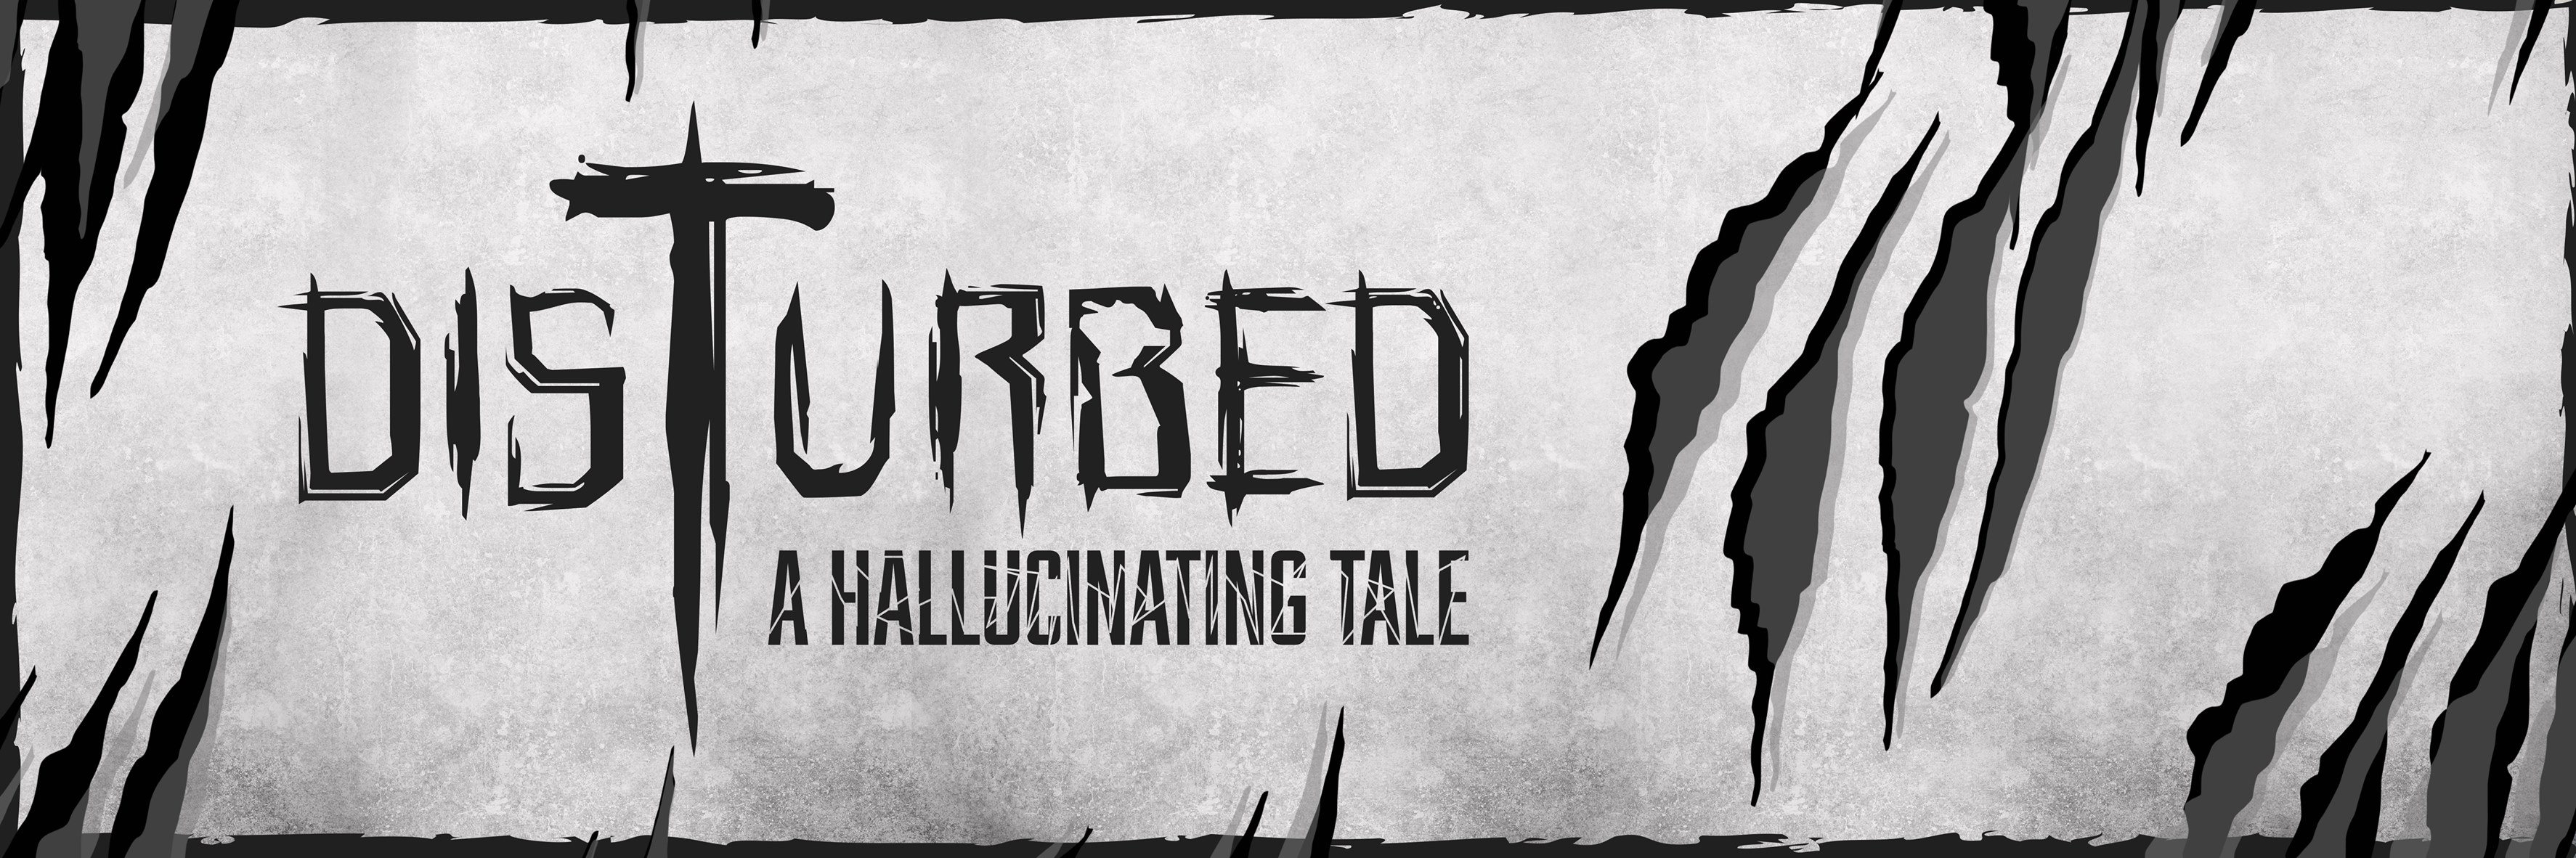 Disturbed: A Hallucinating Tale